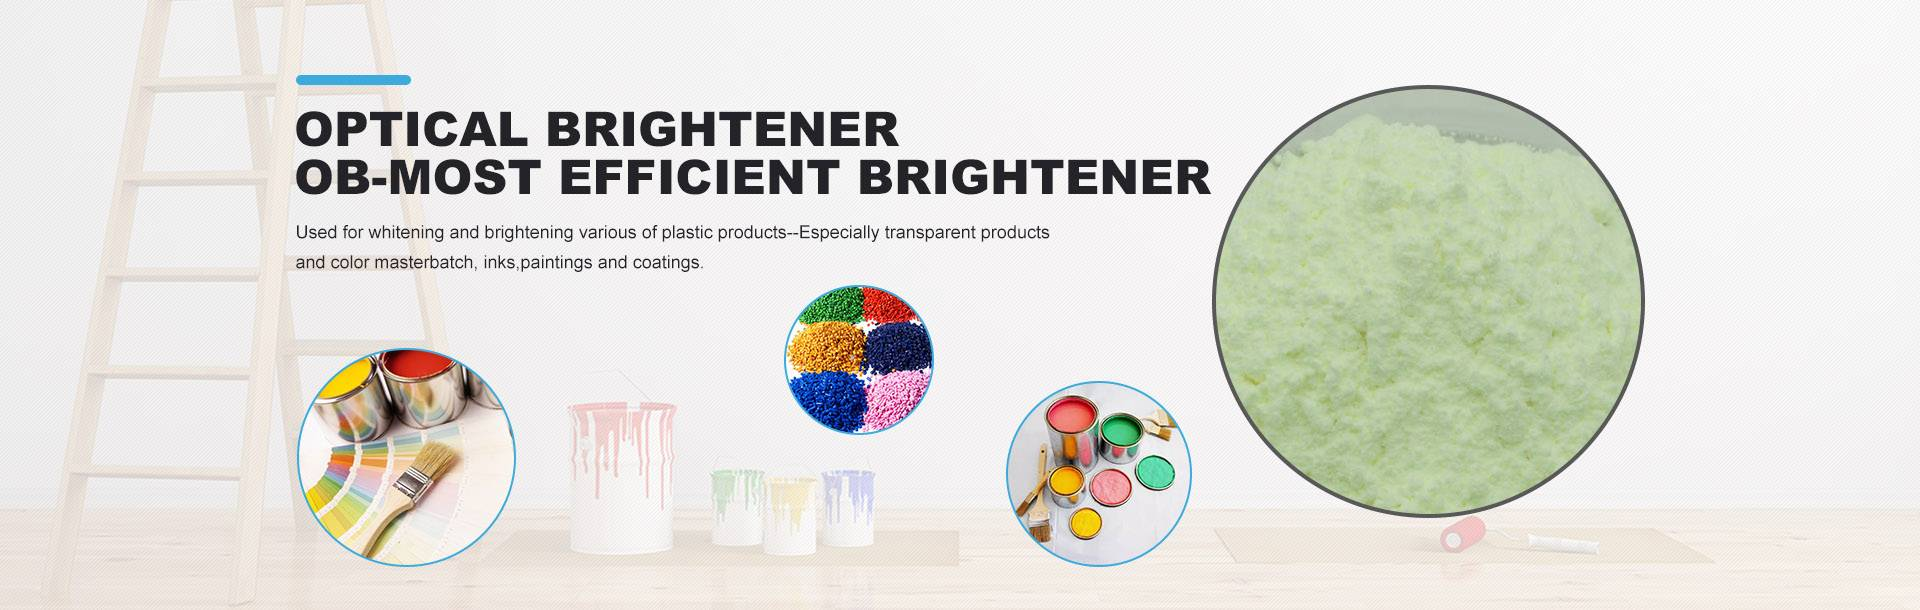 Optical brightener OB-Most efficient brightener